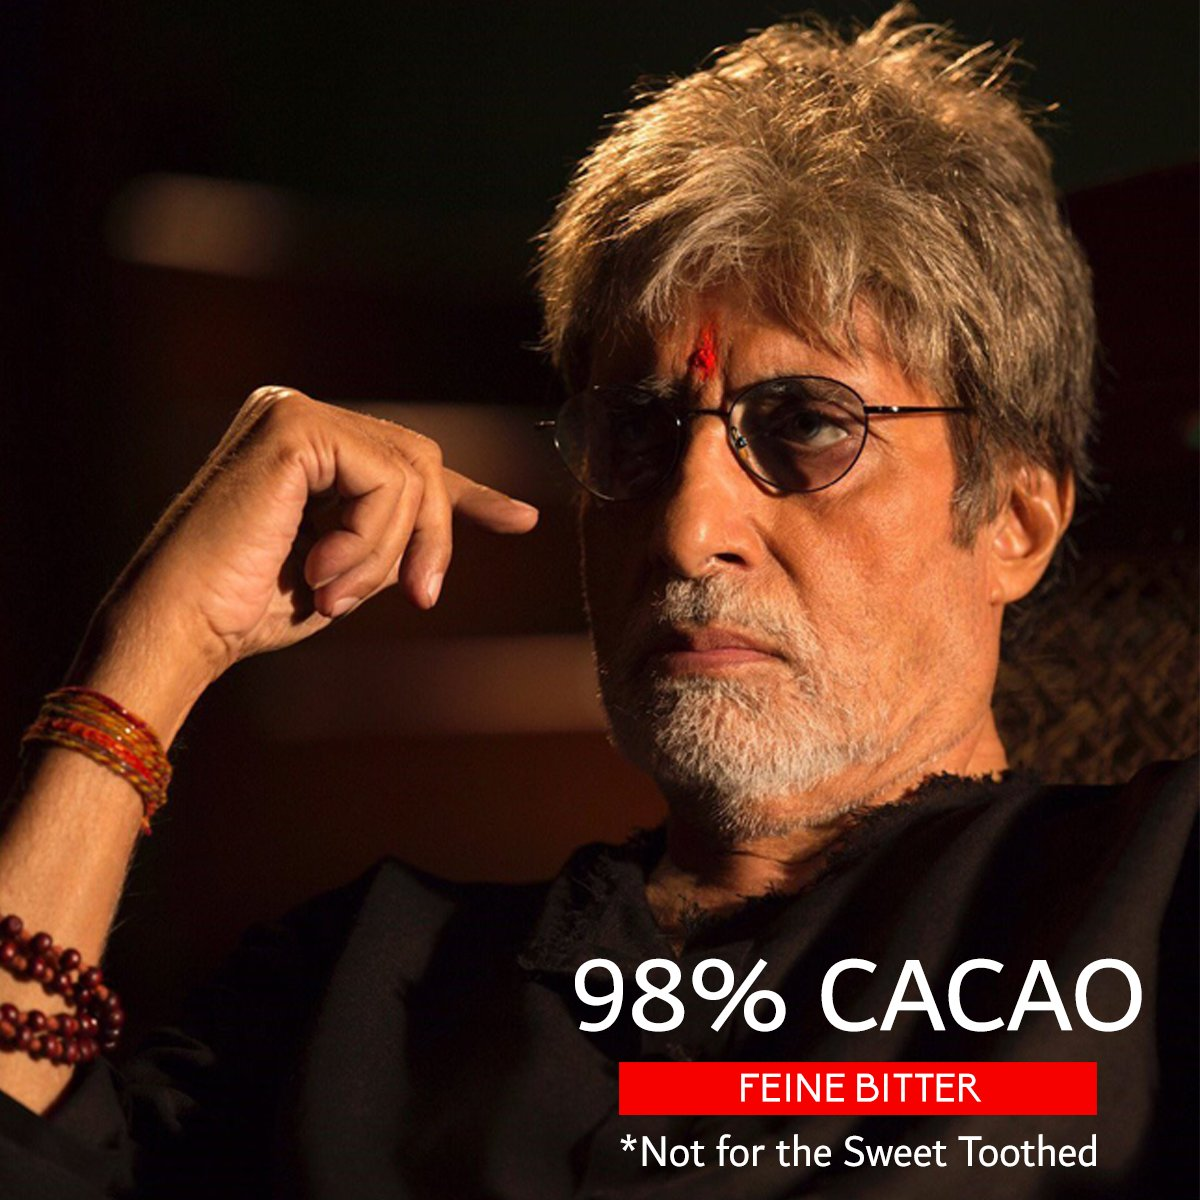 @RGVzoomin Deshpandey, Gokul & Raman. You compelled us to guess & fail @SrBachchan Subhash Nagre stays unshaken. Take a Bow Master #Sarkar3 https://t.co/TqlhluwU8L